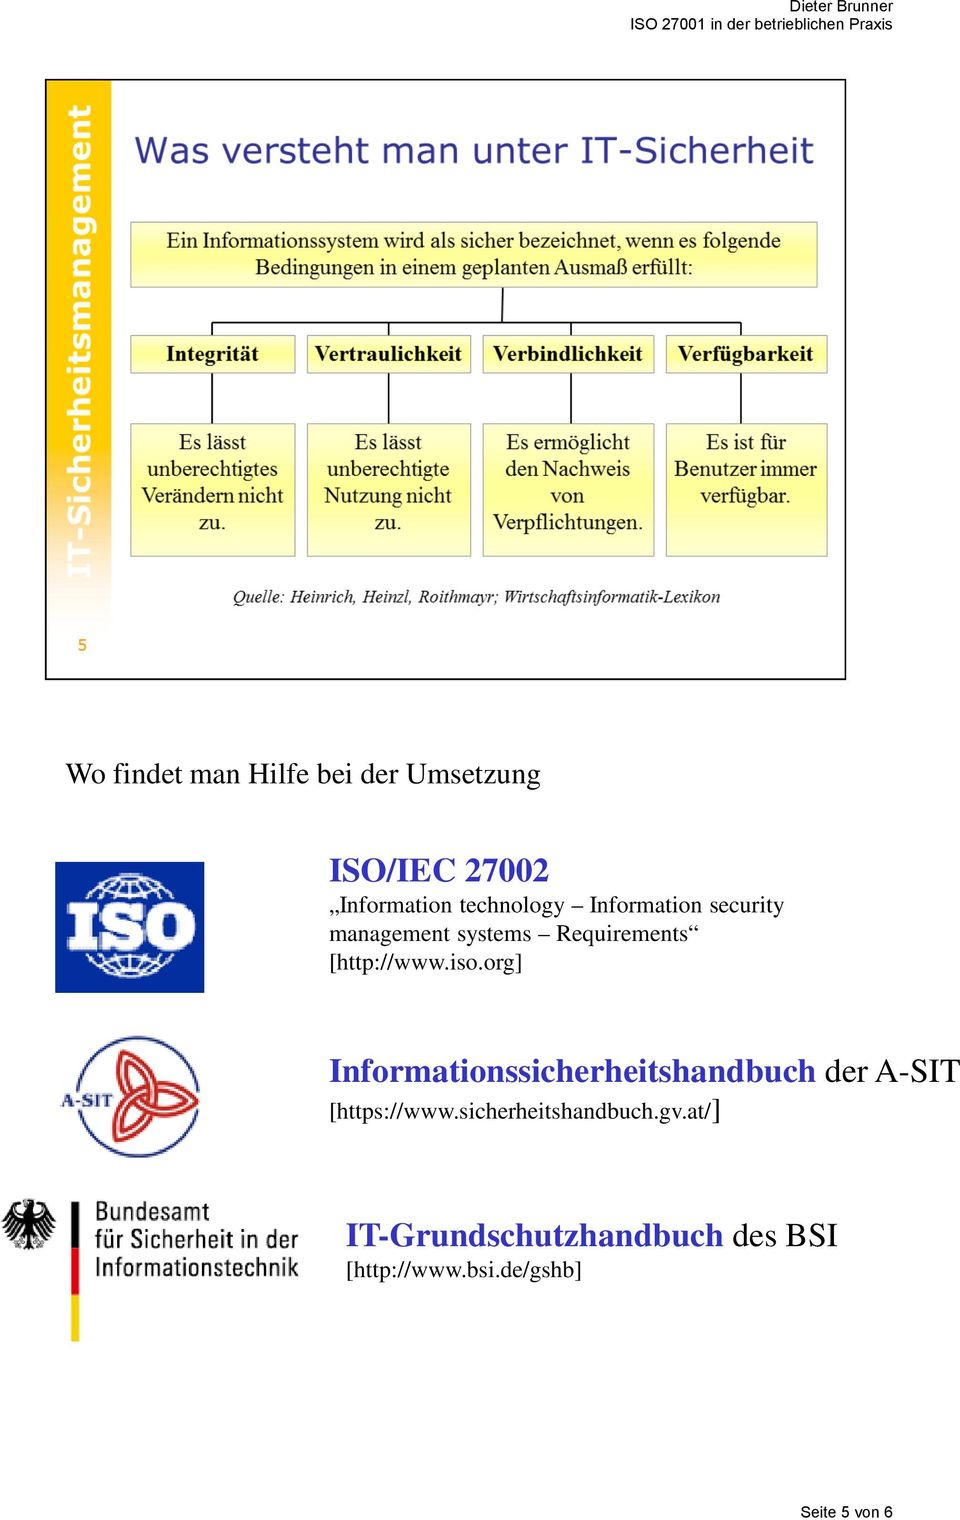 org] Informationssicherheitshandbuch der A-SIT [https://www.